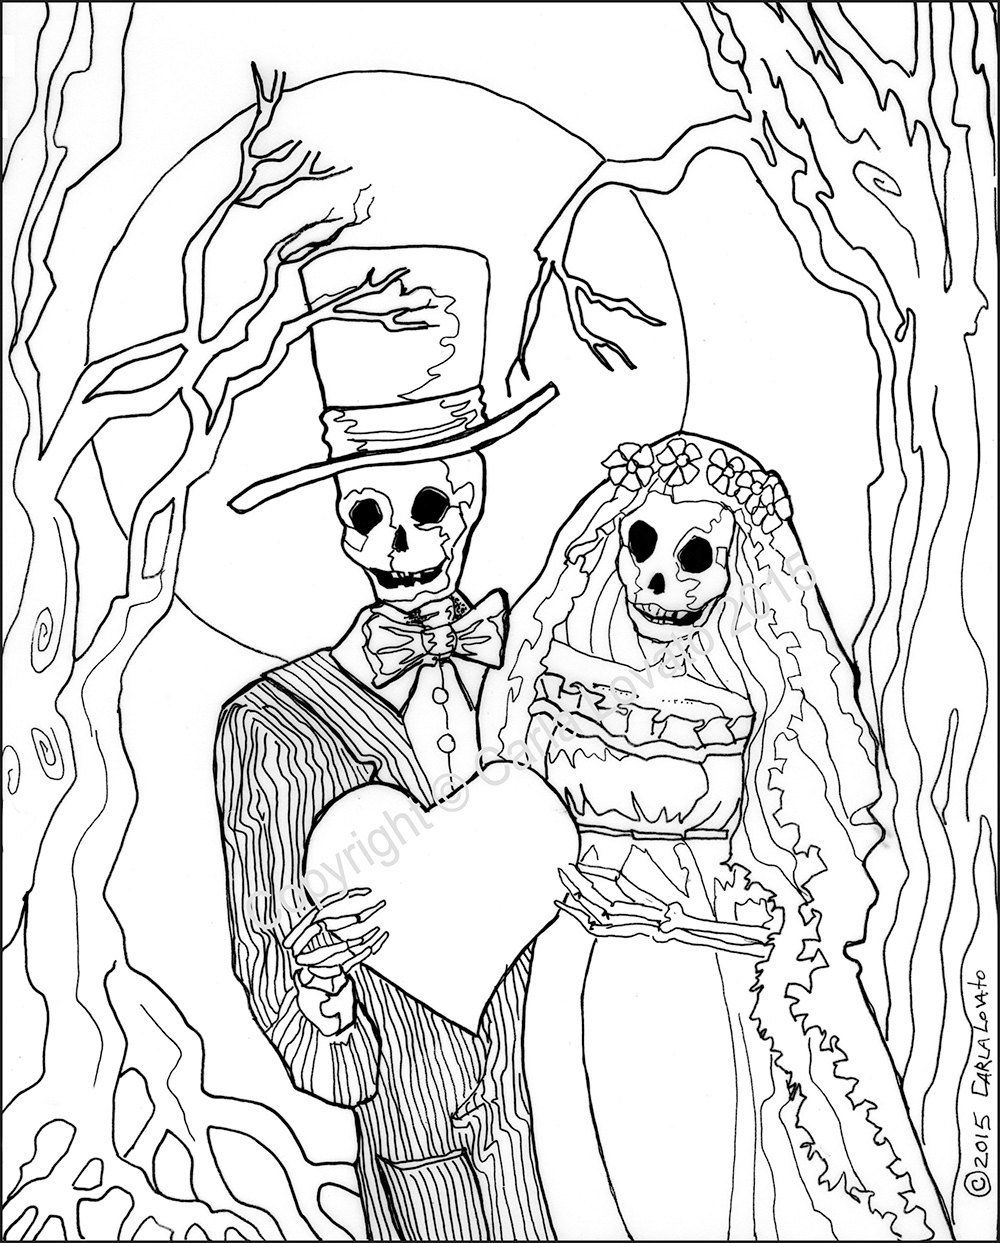 bones of the skull coloring pages | coloring pages Skeleton Wedding Color Page Day of the Dead ...